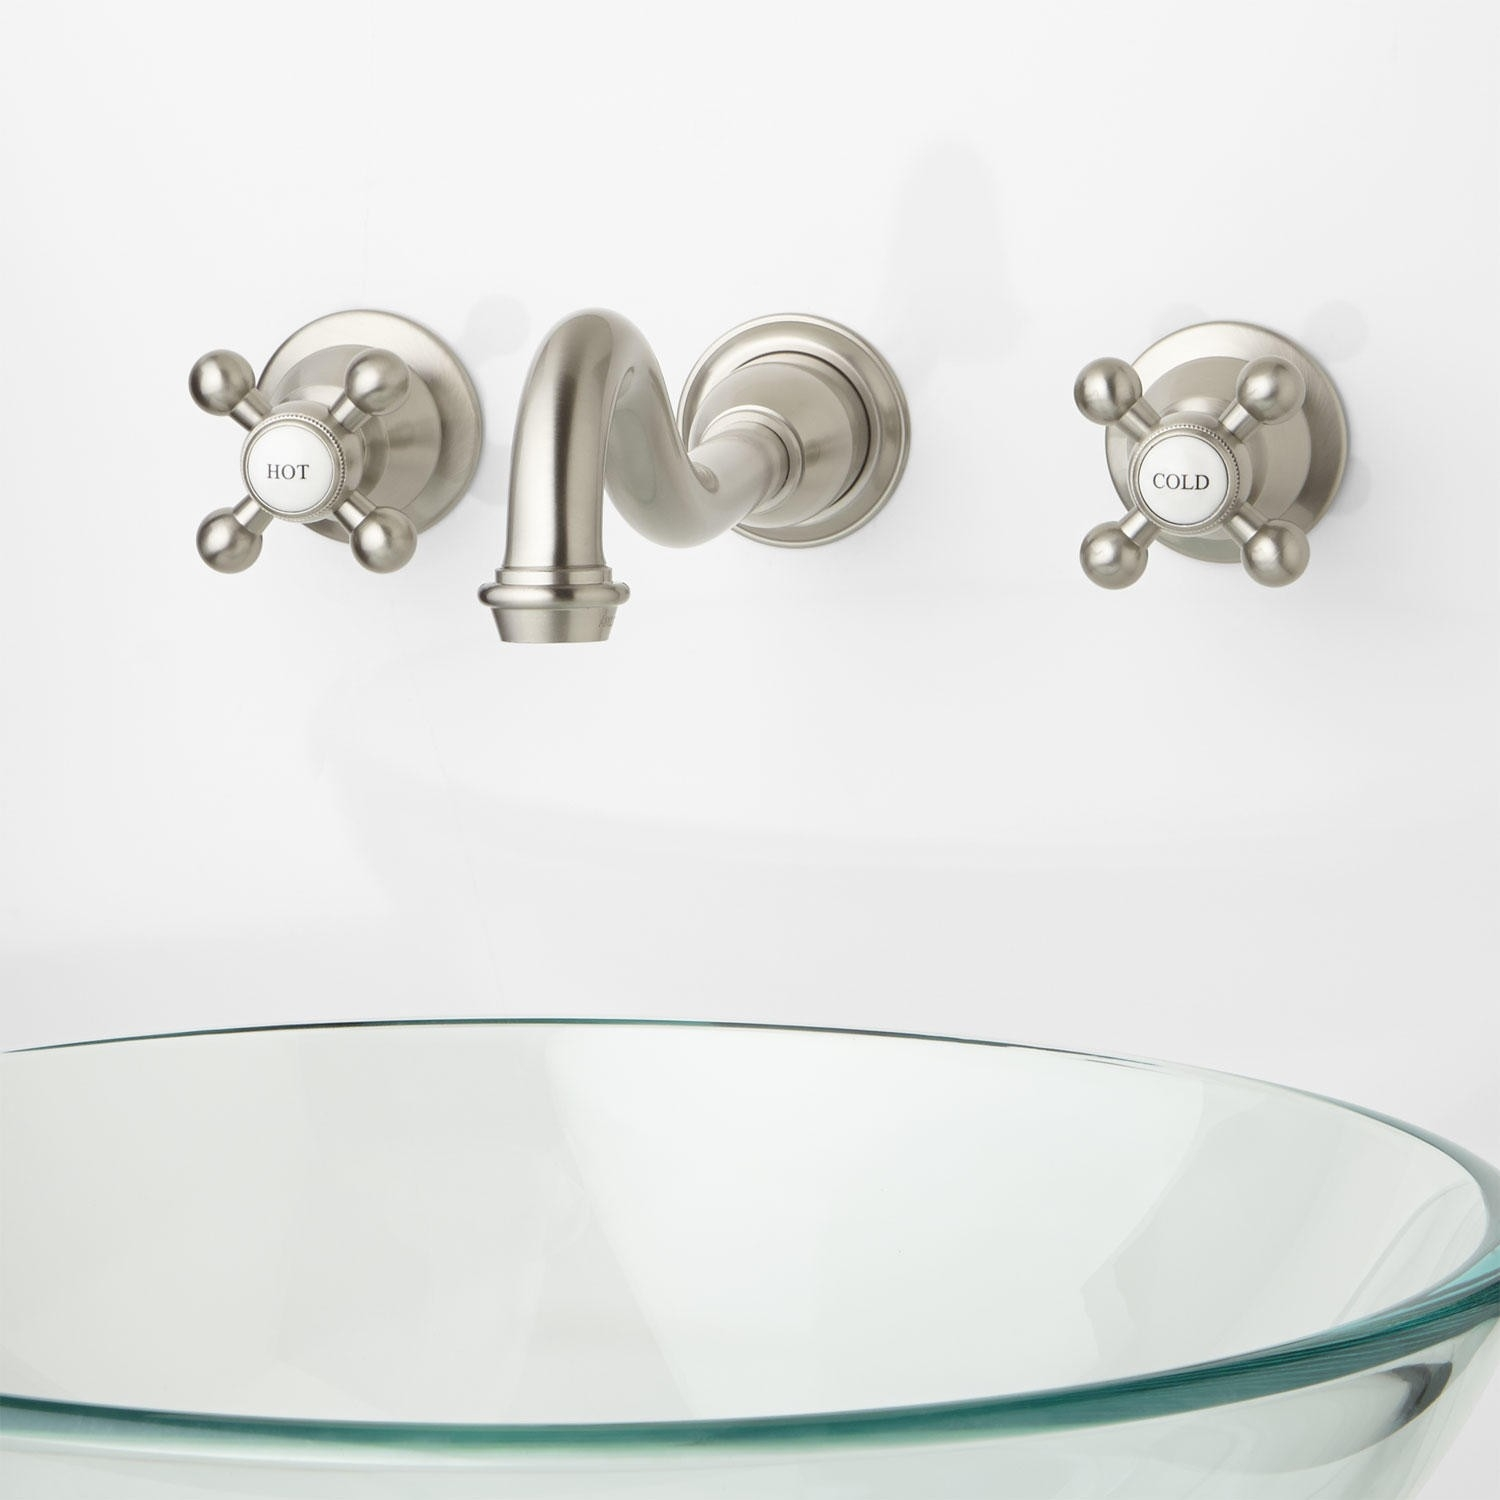 Ideas, vintage wall mounted vessel sink faucet with double cross handles vintage wall mounted vessel sink faucet with double cross handles bathroom faucets lavatory faucets signature hardware 1500 x 1500 1  .